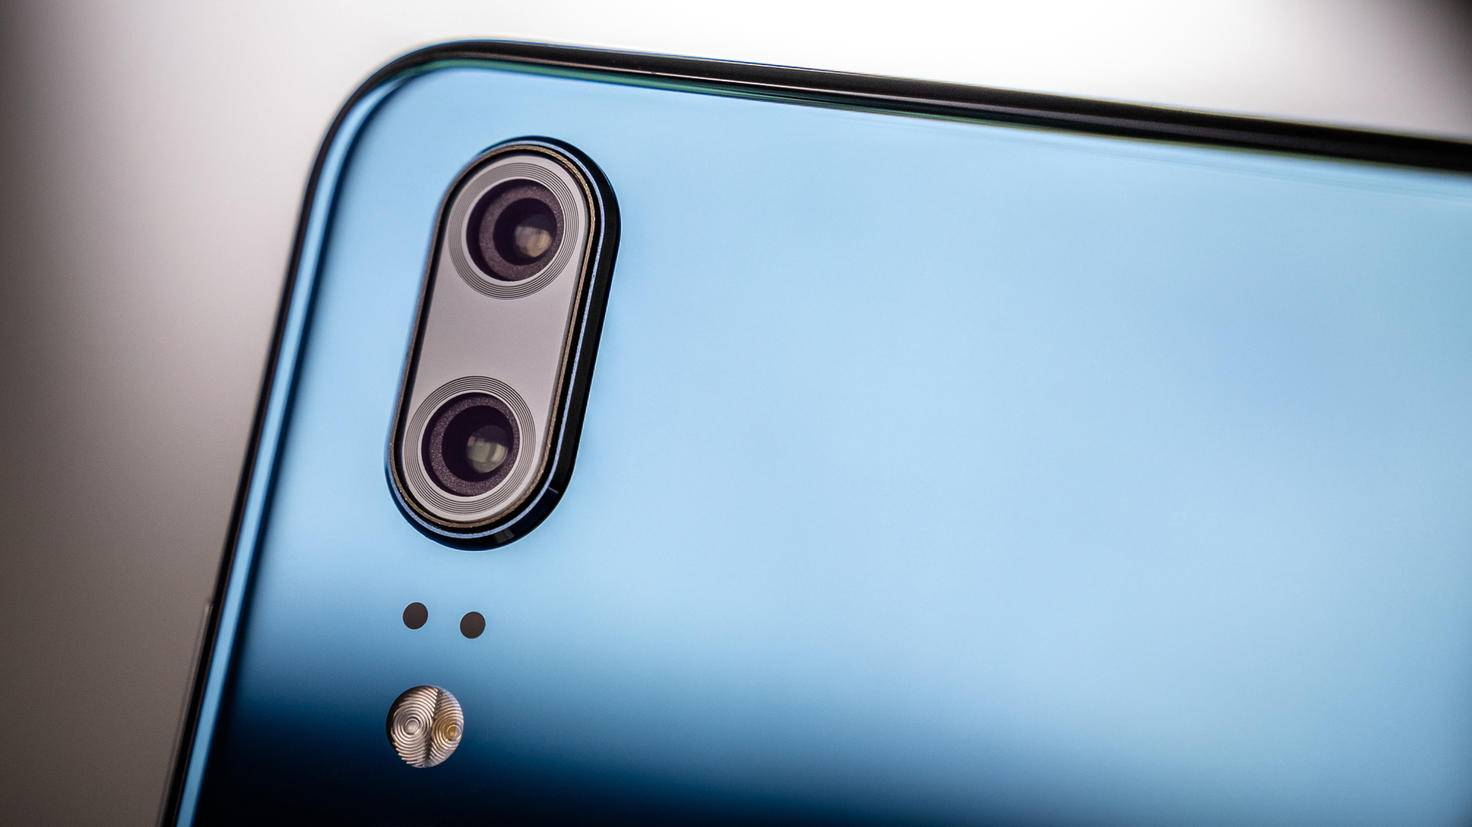 Huawei-P20-Dual-Kamera-TURN-ON